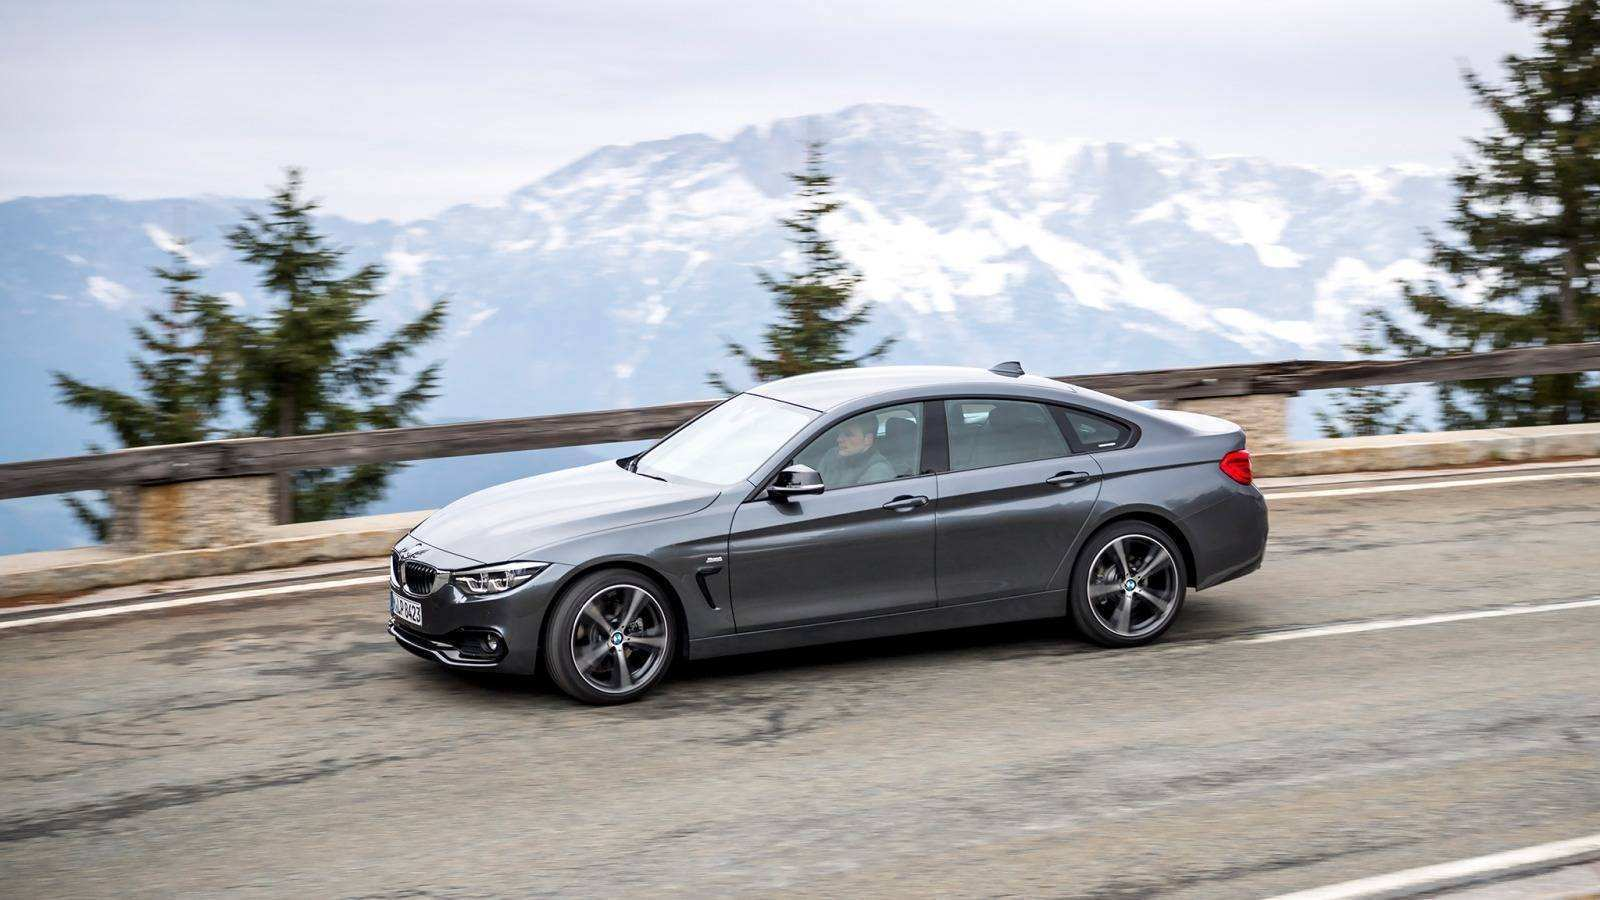 34 Gallery of 2019 Bmw 4 Series Gran Coupe Specs for 2019 Bmw 4 Series Gran Coupe